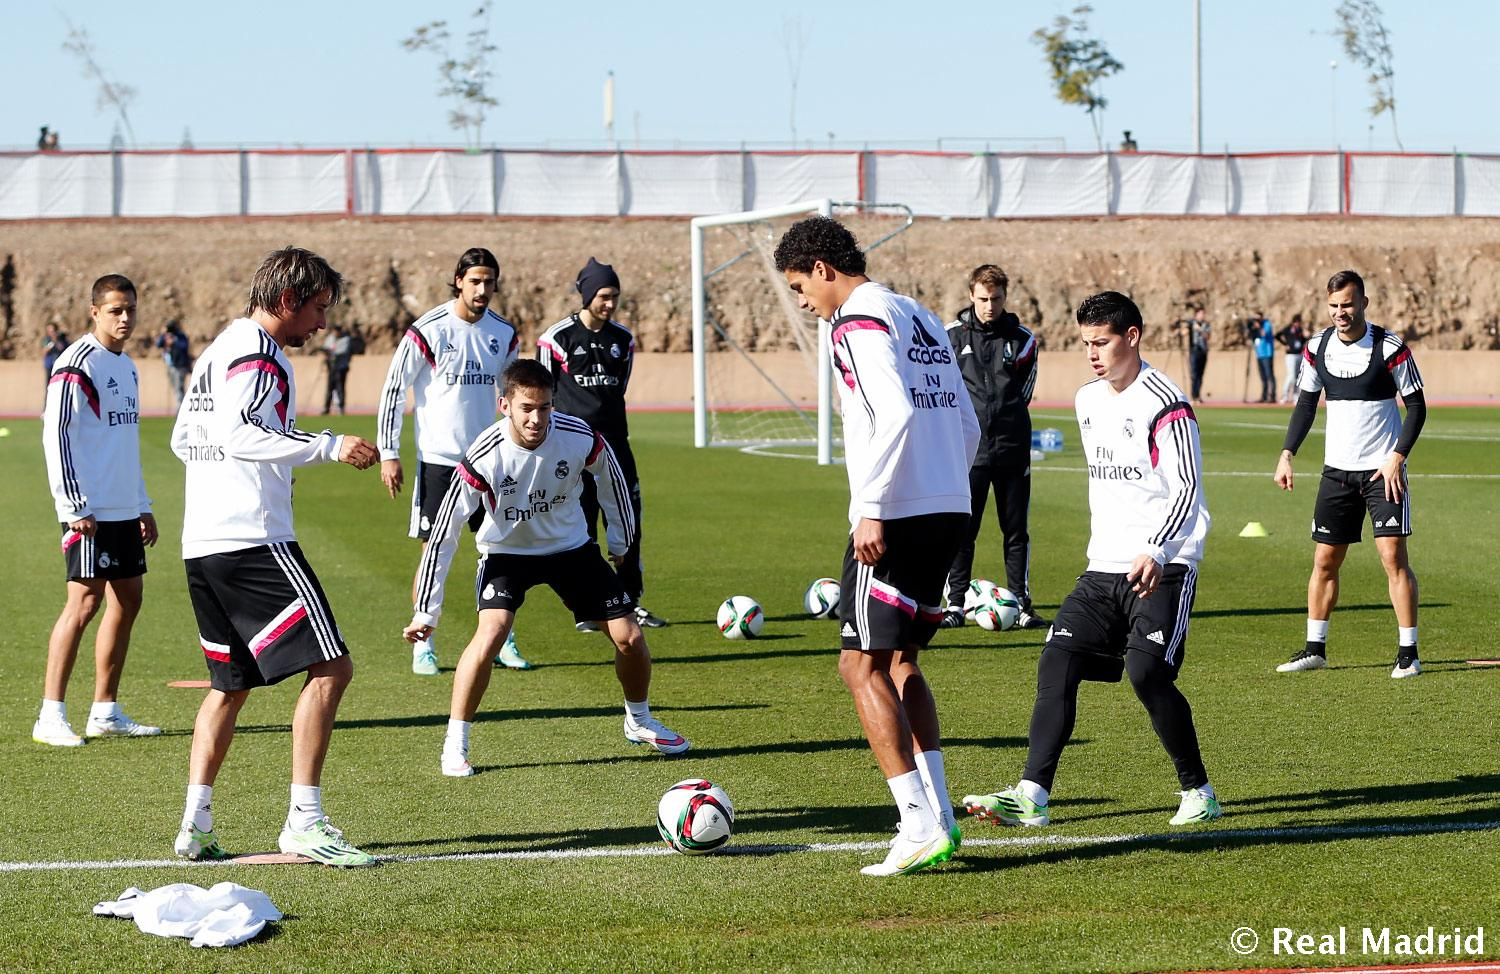 Real Madrid - Entrenamiento del Real Madrid - 17-12-2014